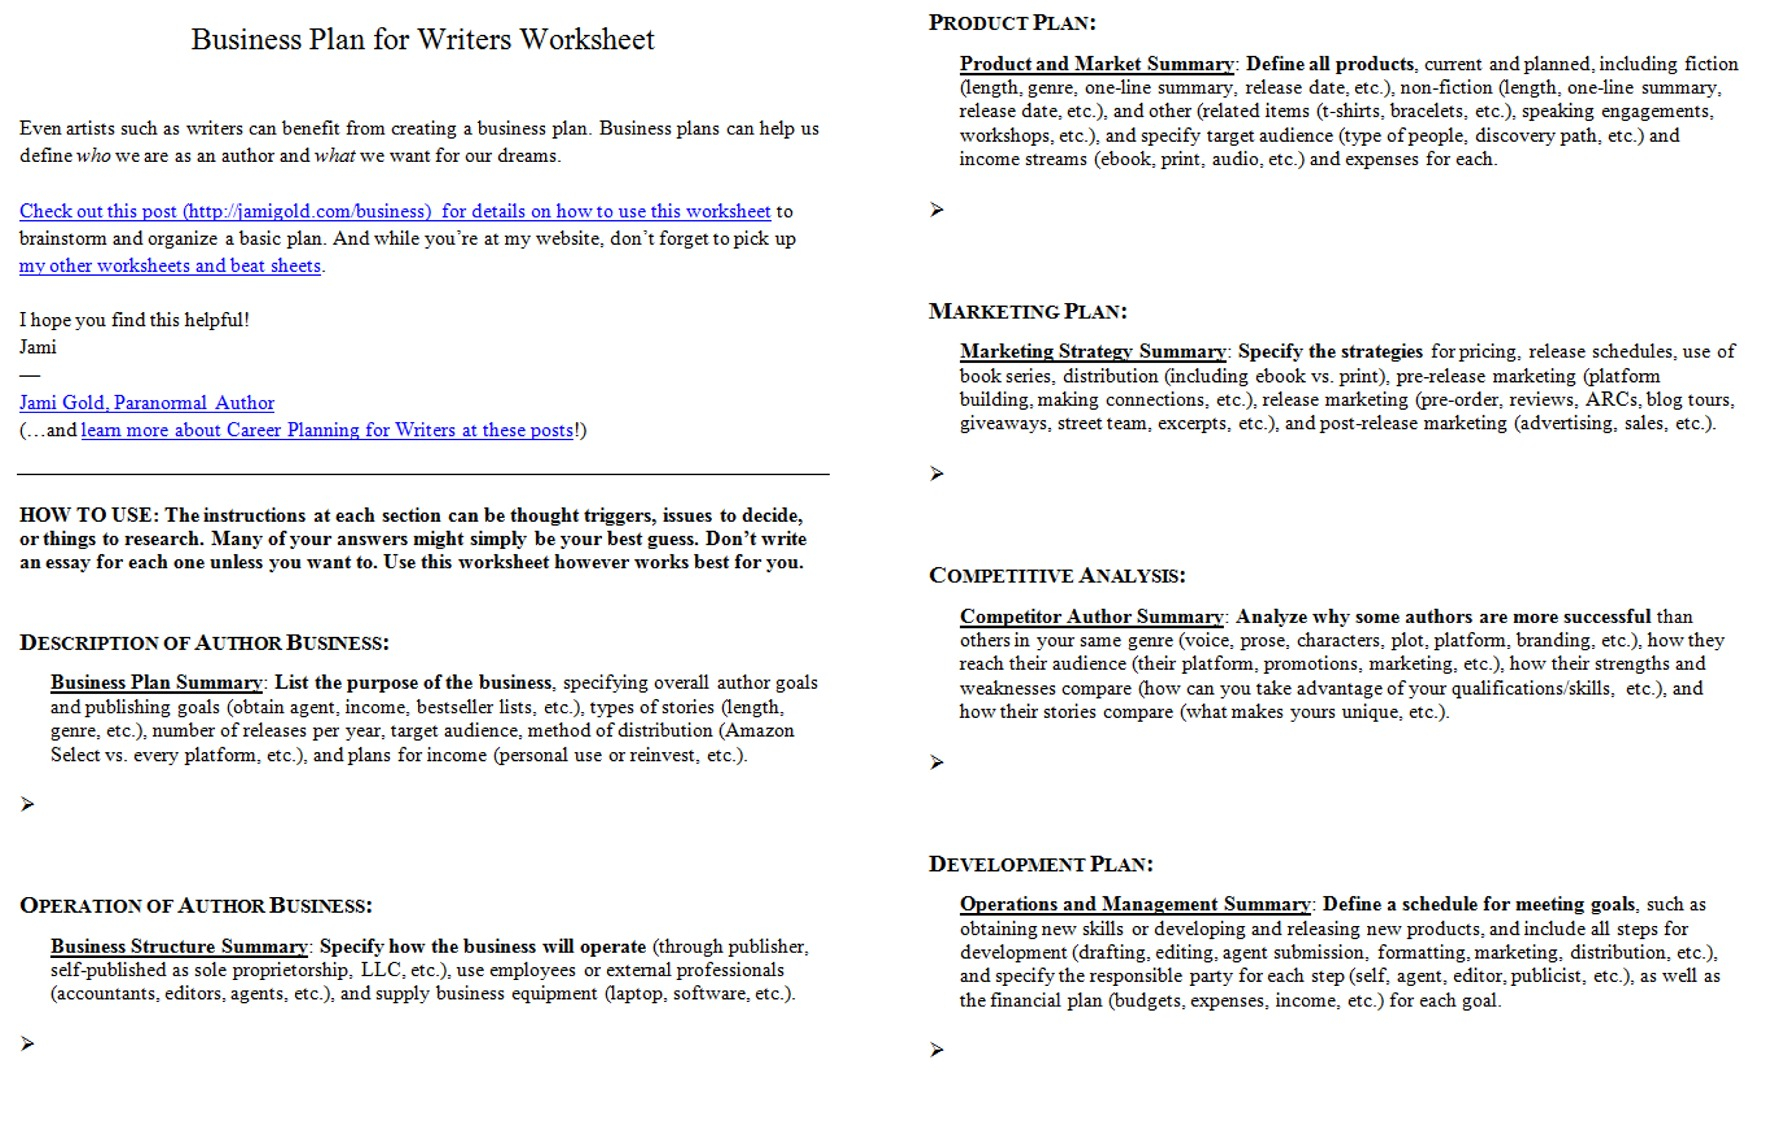 Weirdmailus  Terrific Worksheets For Writers  Jami Gold Paranormal Author With Lovely Screen Shot Of Both Pages Of The Business Plan For Writers Worksheet With Awesome Antonyms And Synonyms Worksheet Also Oa Worksheets In Addition Ecosystems Worksheet And Laws Of Exponents Worksheet Answers As Well As Multiple Meaning Words Worksheets Rd Grade Additionally Worksheets For Fun From Jamigoldcom With Weirdmailus  Lovely Worksheets For Writers  Jami Gold Paranormal Author With Awesome Screen Shot Of Both Pages Of The Business Plan For Writers Worksheet And Terrific Antonyms And Synonyms Worksheet Also Oa Worksheets In Addition Ecosystems Worksheet From Jamigoldcom